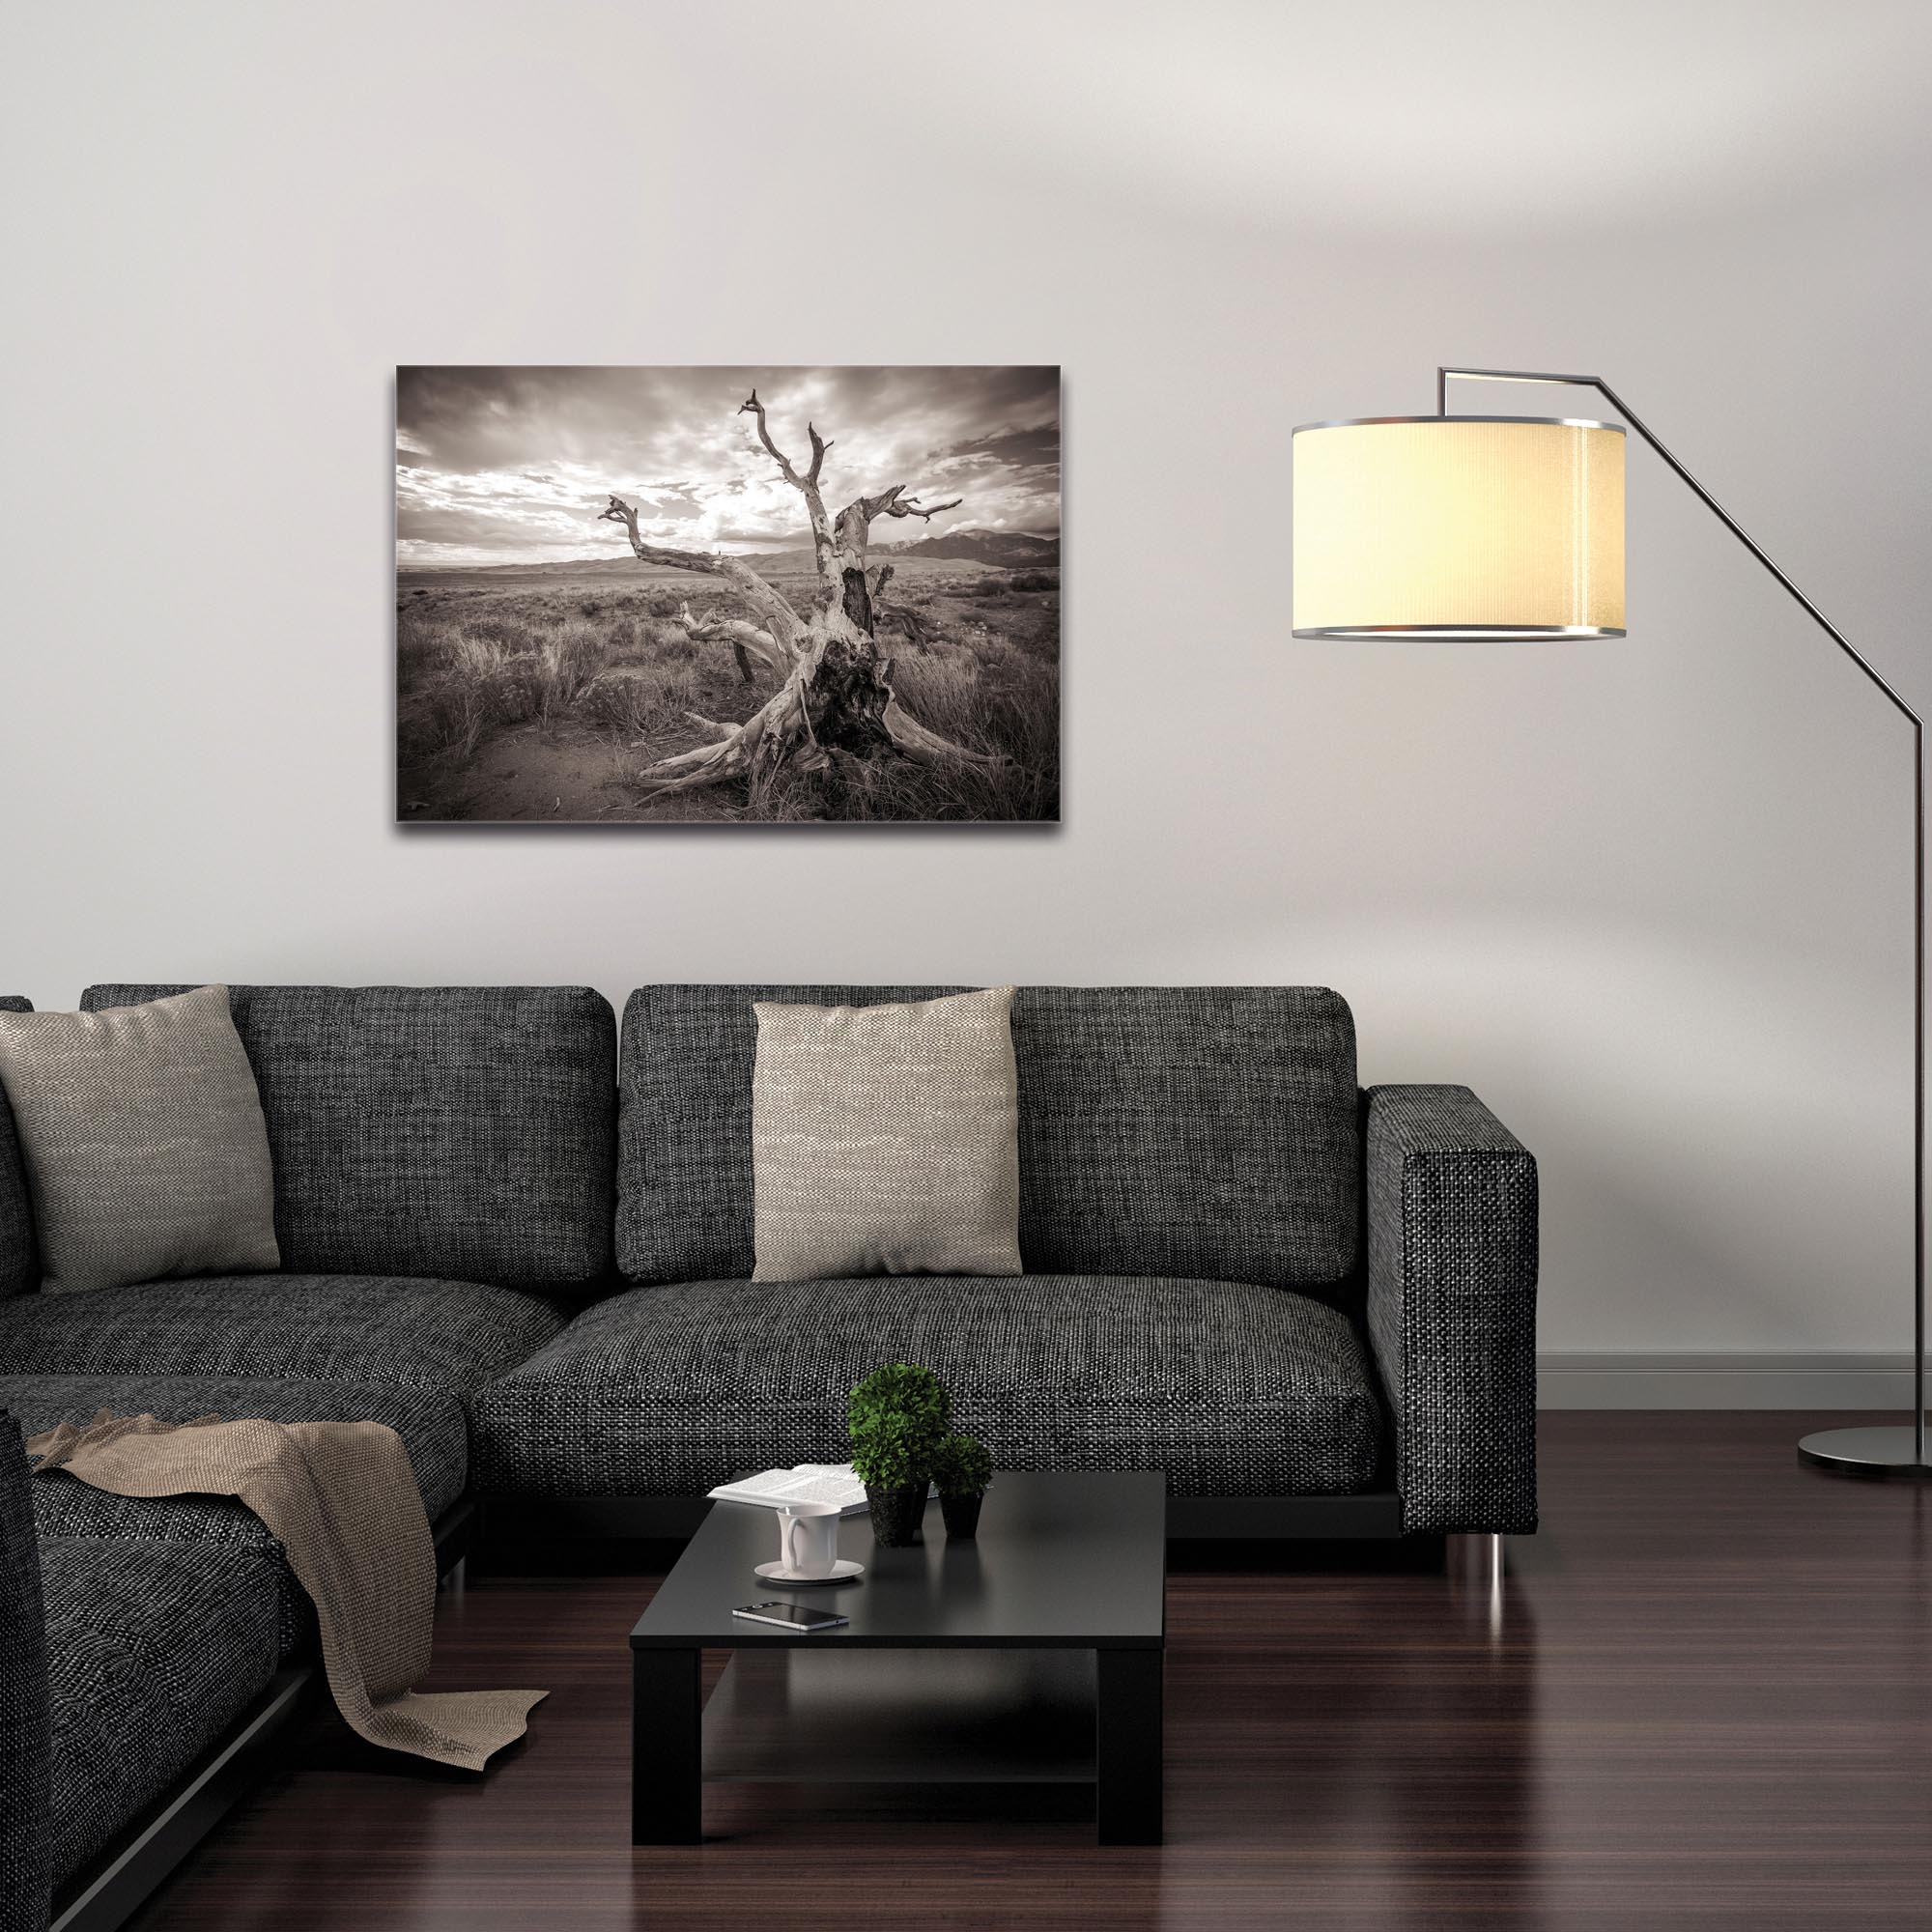 Film Noir Wall Art 'Knotty Valley' - Black & White Photography on Metal or Plexiglass - Image 3